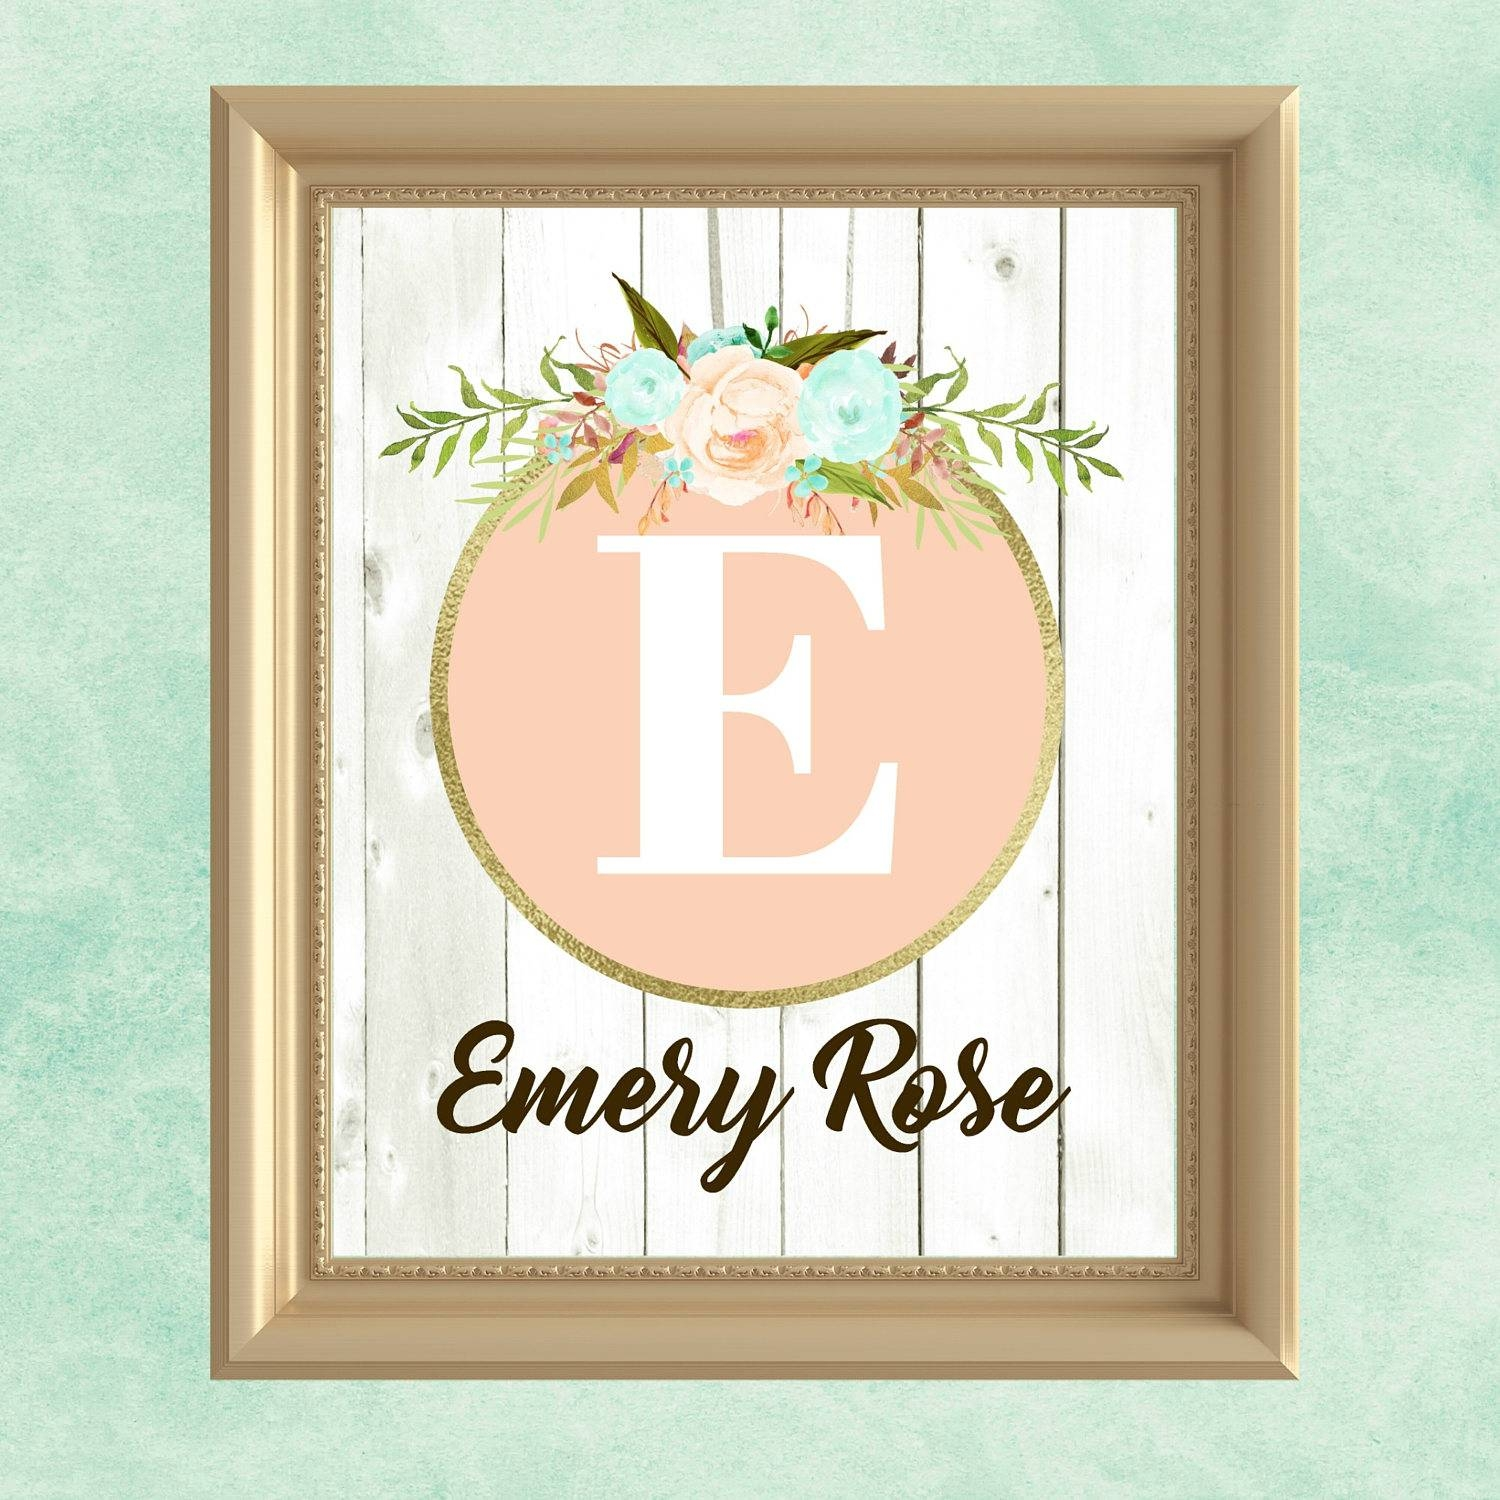 Baby Girl Nursery Wall Art Peach Mint Gold Nursery Decor Intended For Recent Personalized Nursery Wall Art (View 7 of 20)